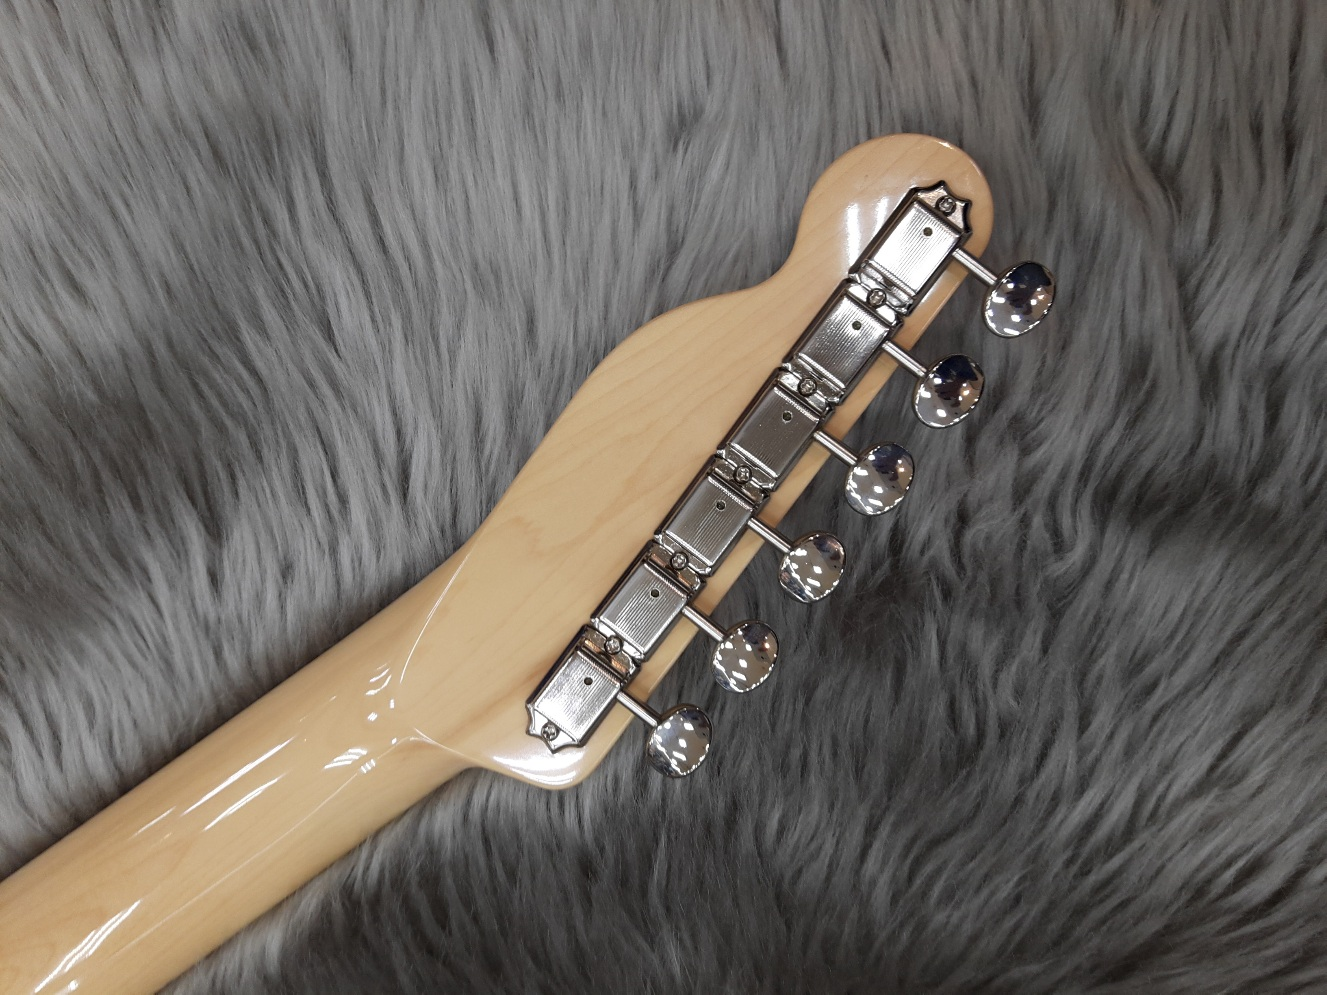 Japan Exclusive Classic 69 Tele Thinline MAHOのヘッド裏-アップ画像